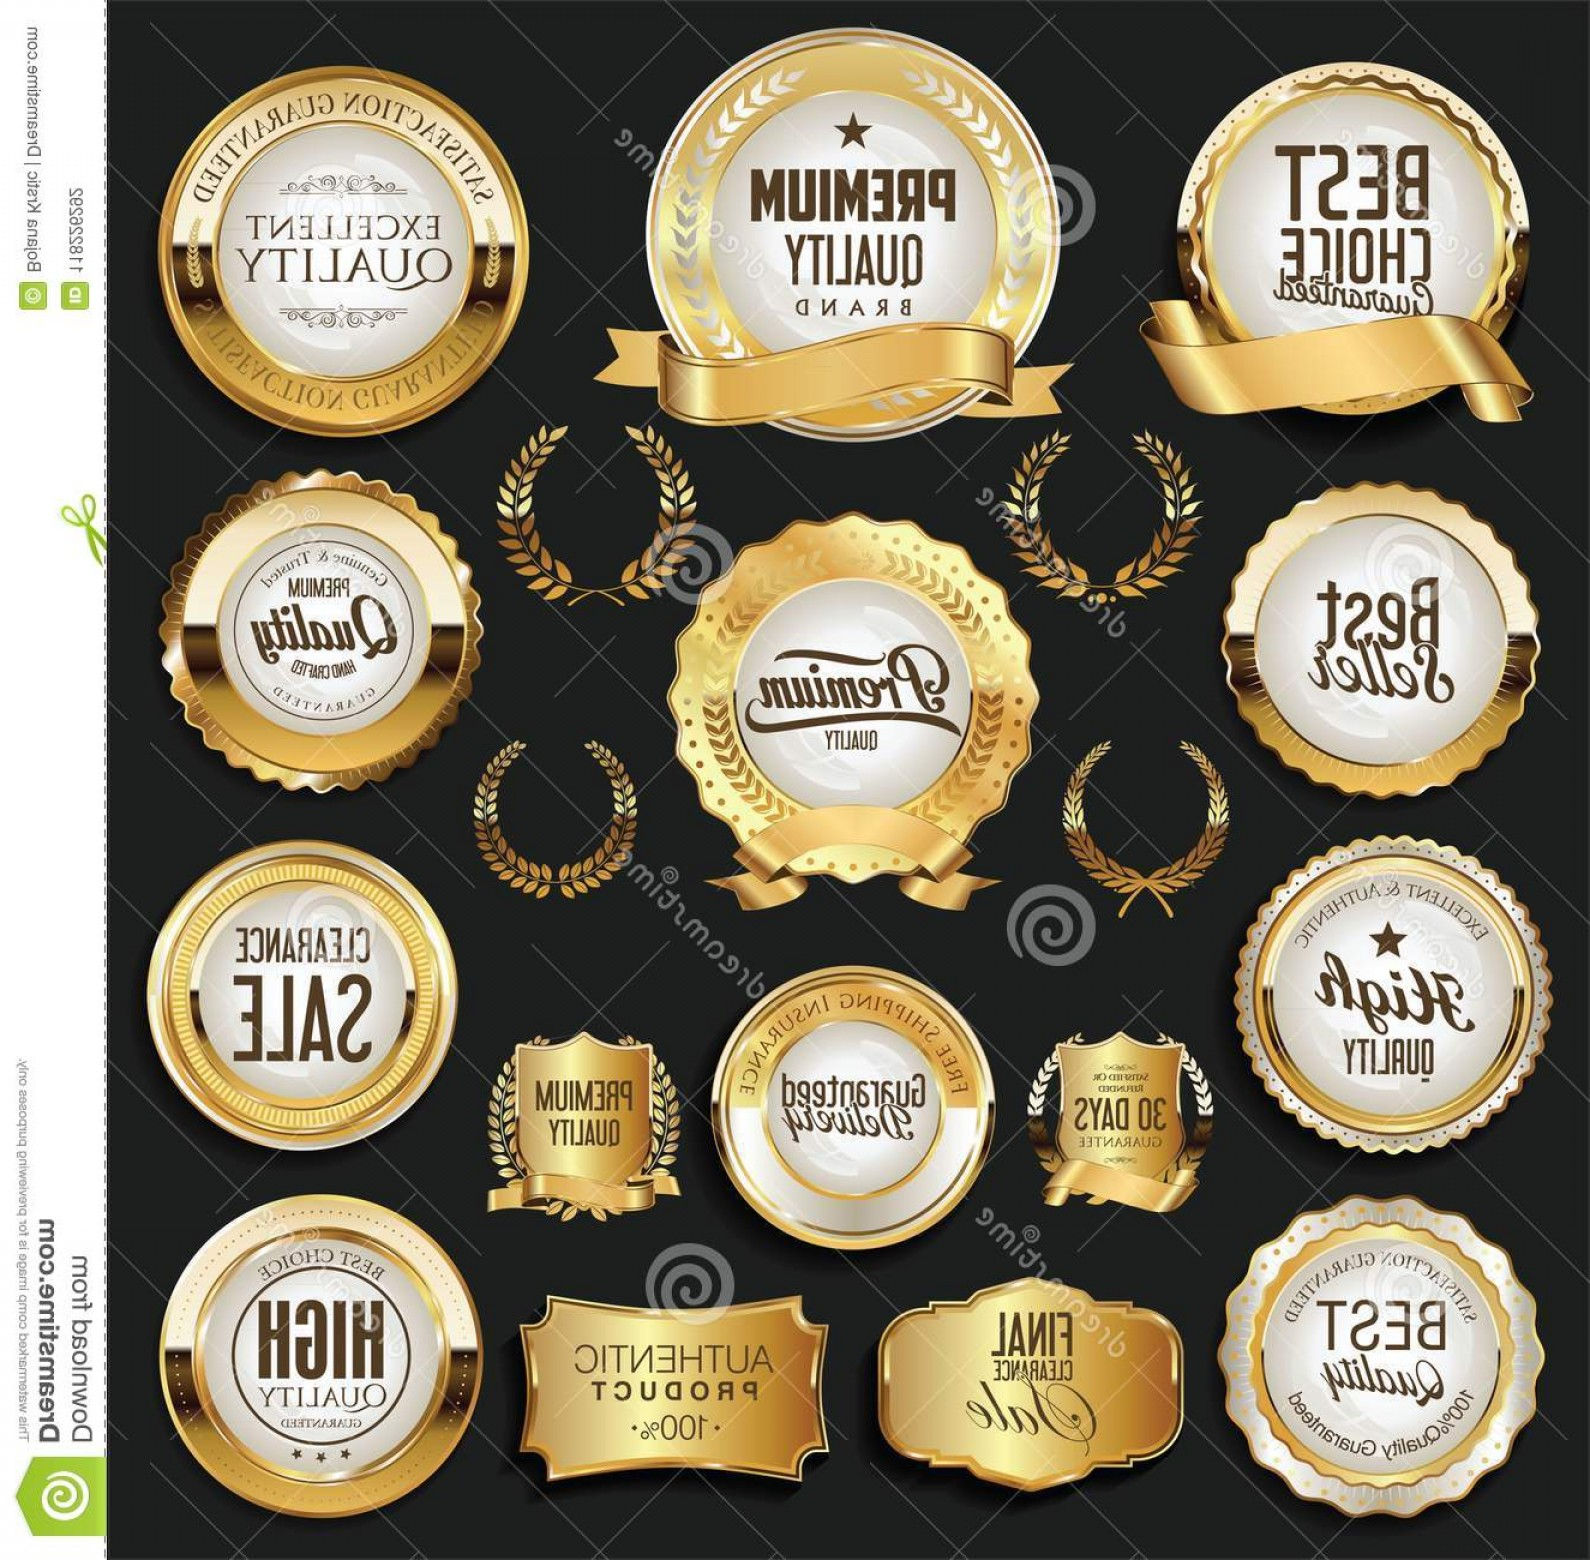 Badge Vector 1920'Sribbon: Golden Retro Labels Badges Frames Ribbons Collection Set Image